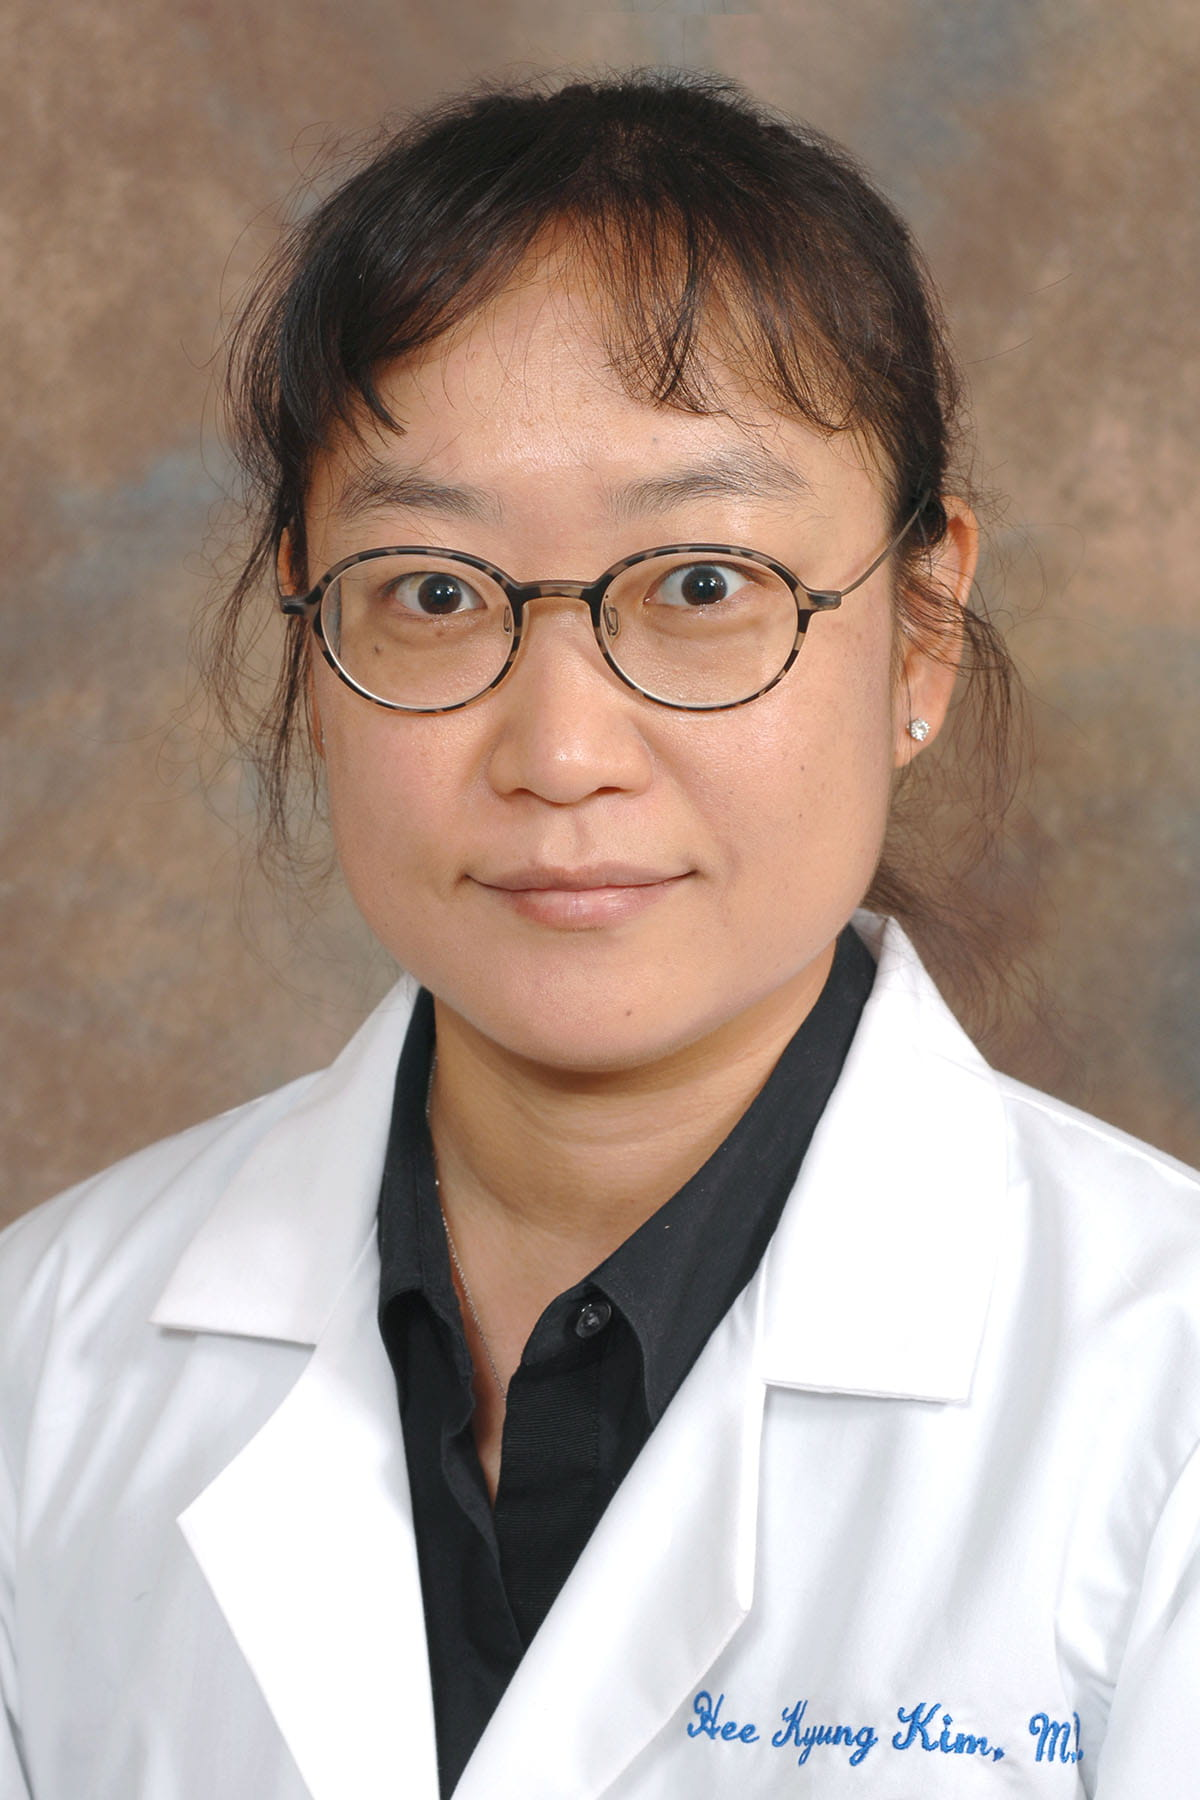 Hee H. Kim, MD